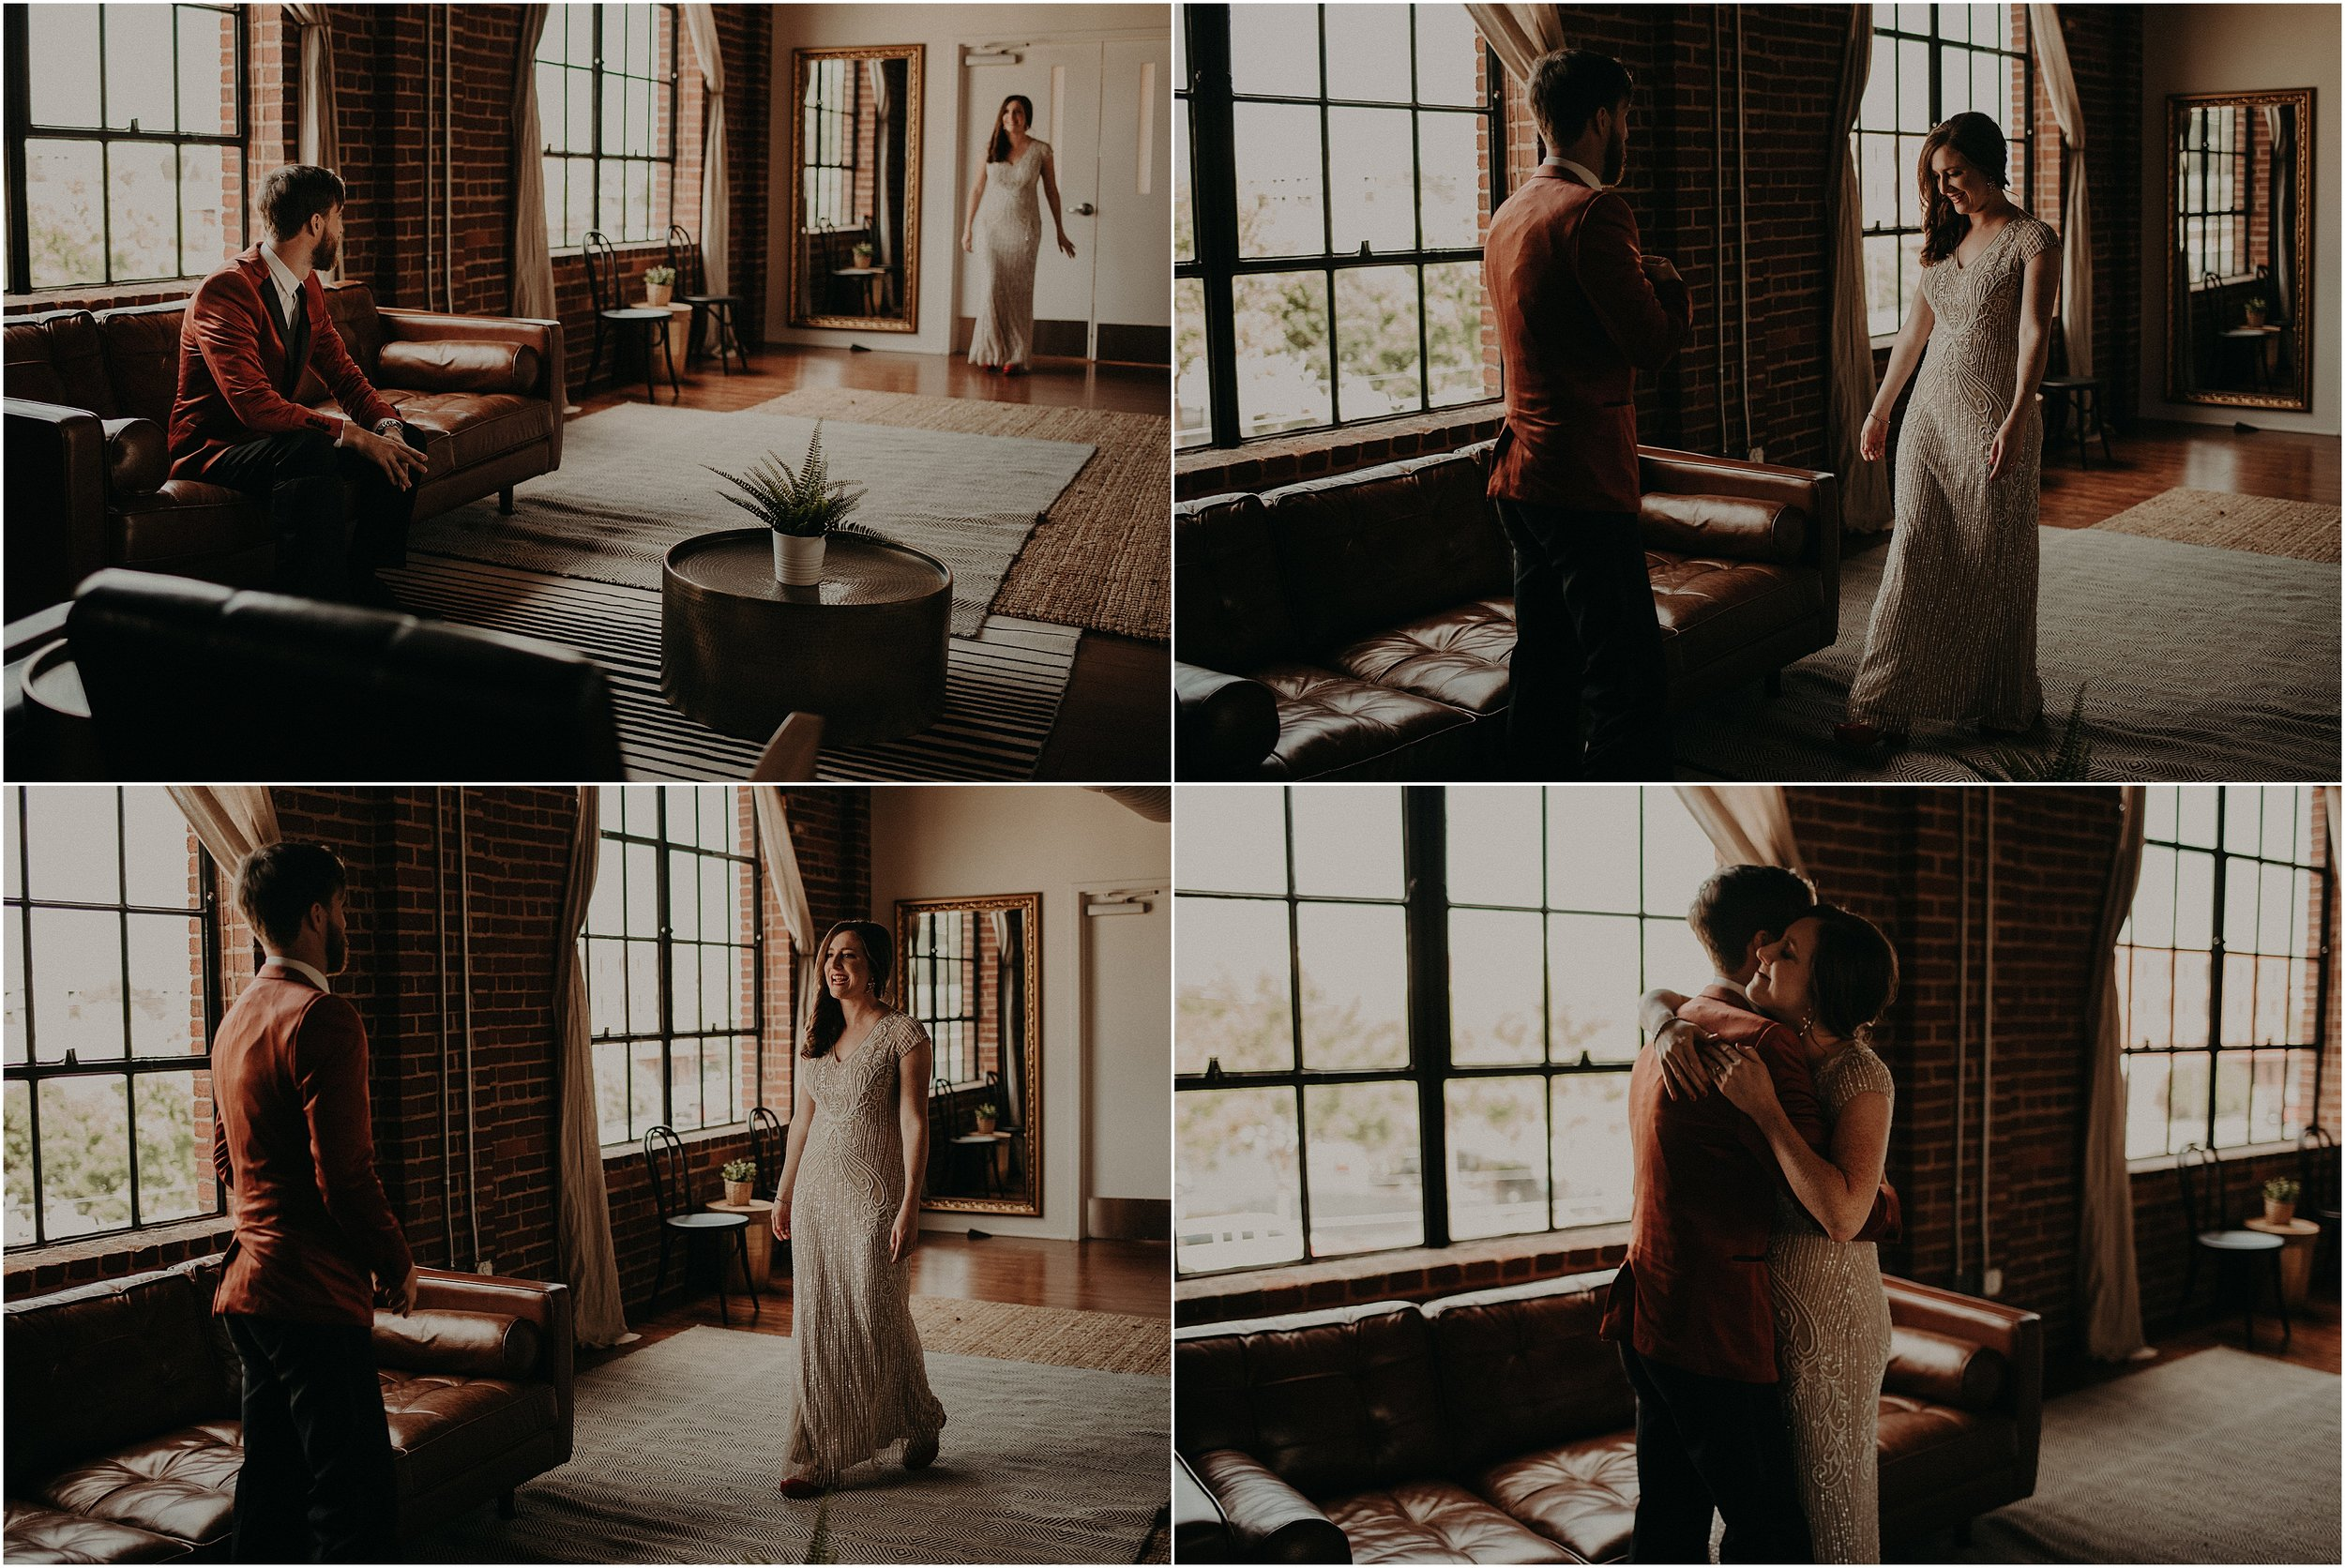 The super stylish wedding couple share their first look in the wedding suite at The Turnbull building in Chattanooga, Tennessee